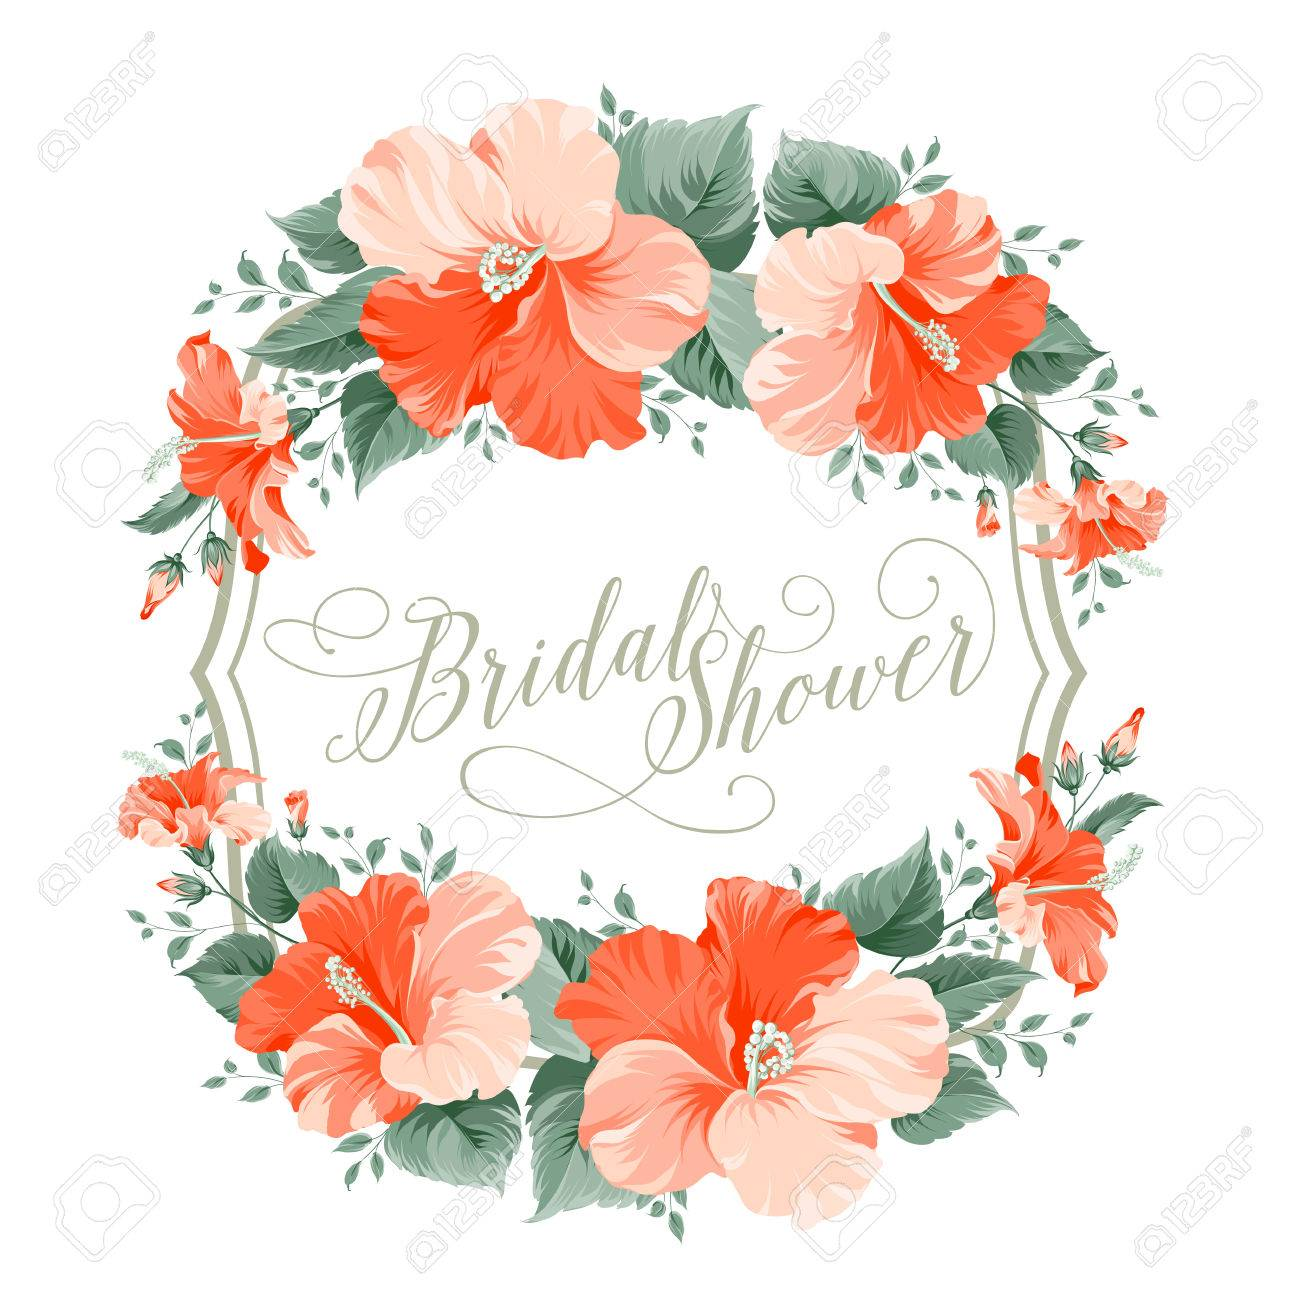 red hibiscus flower wreath with calligraphic text for bridal shower invitation vector illustration stock